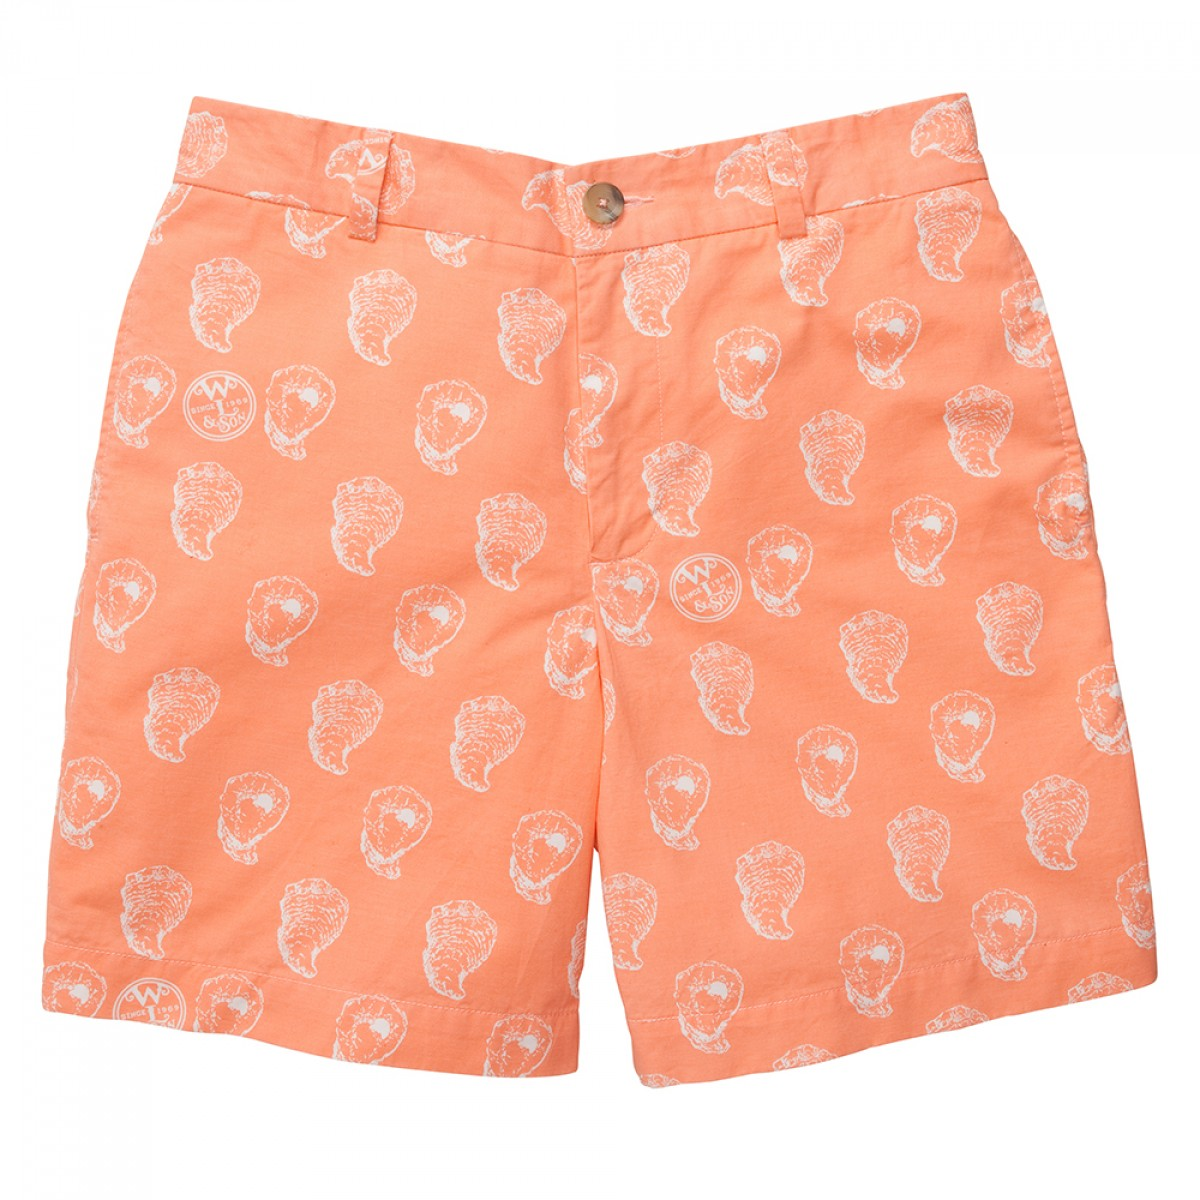 Shucker Short - Coral